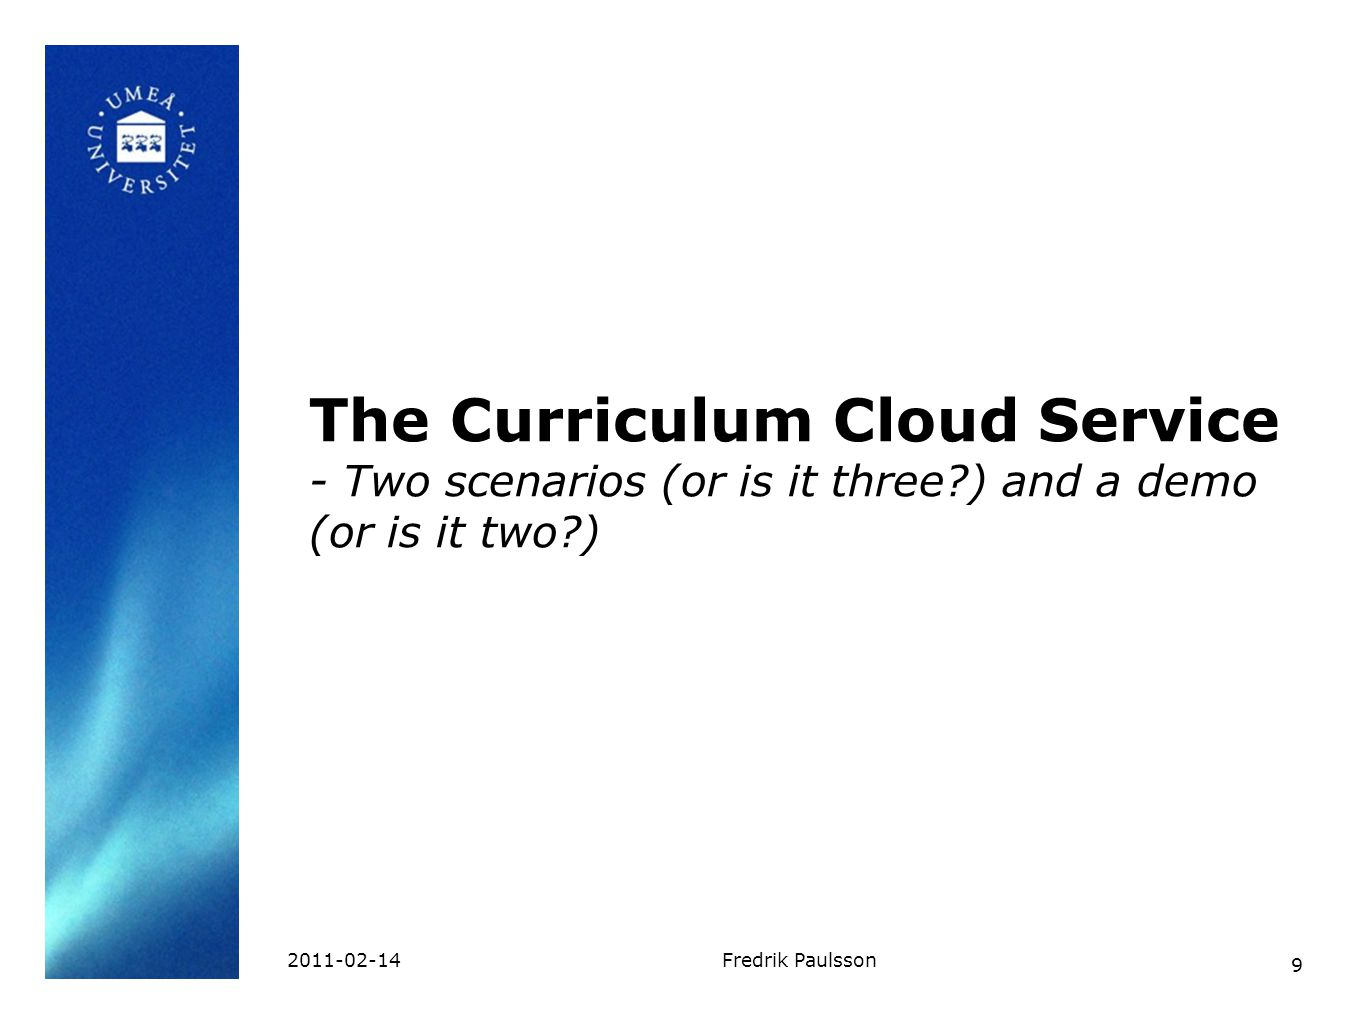 10 The Curricullum as a Cloud Service Styrdokument Online The Curriculum Browser API:s level 1 & level 2 (RESTFul) Semantic Web Data (RDF/Linked Data) The Spider Publisher X Web Service Y (For Personal Development Plans) All learning resources that match Objective x and Mark Criteria y for 9th grade.